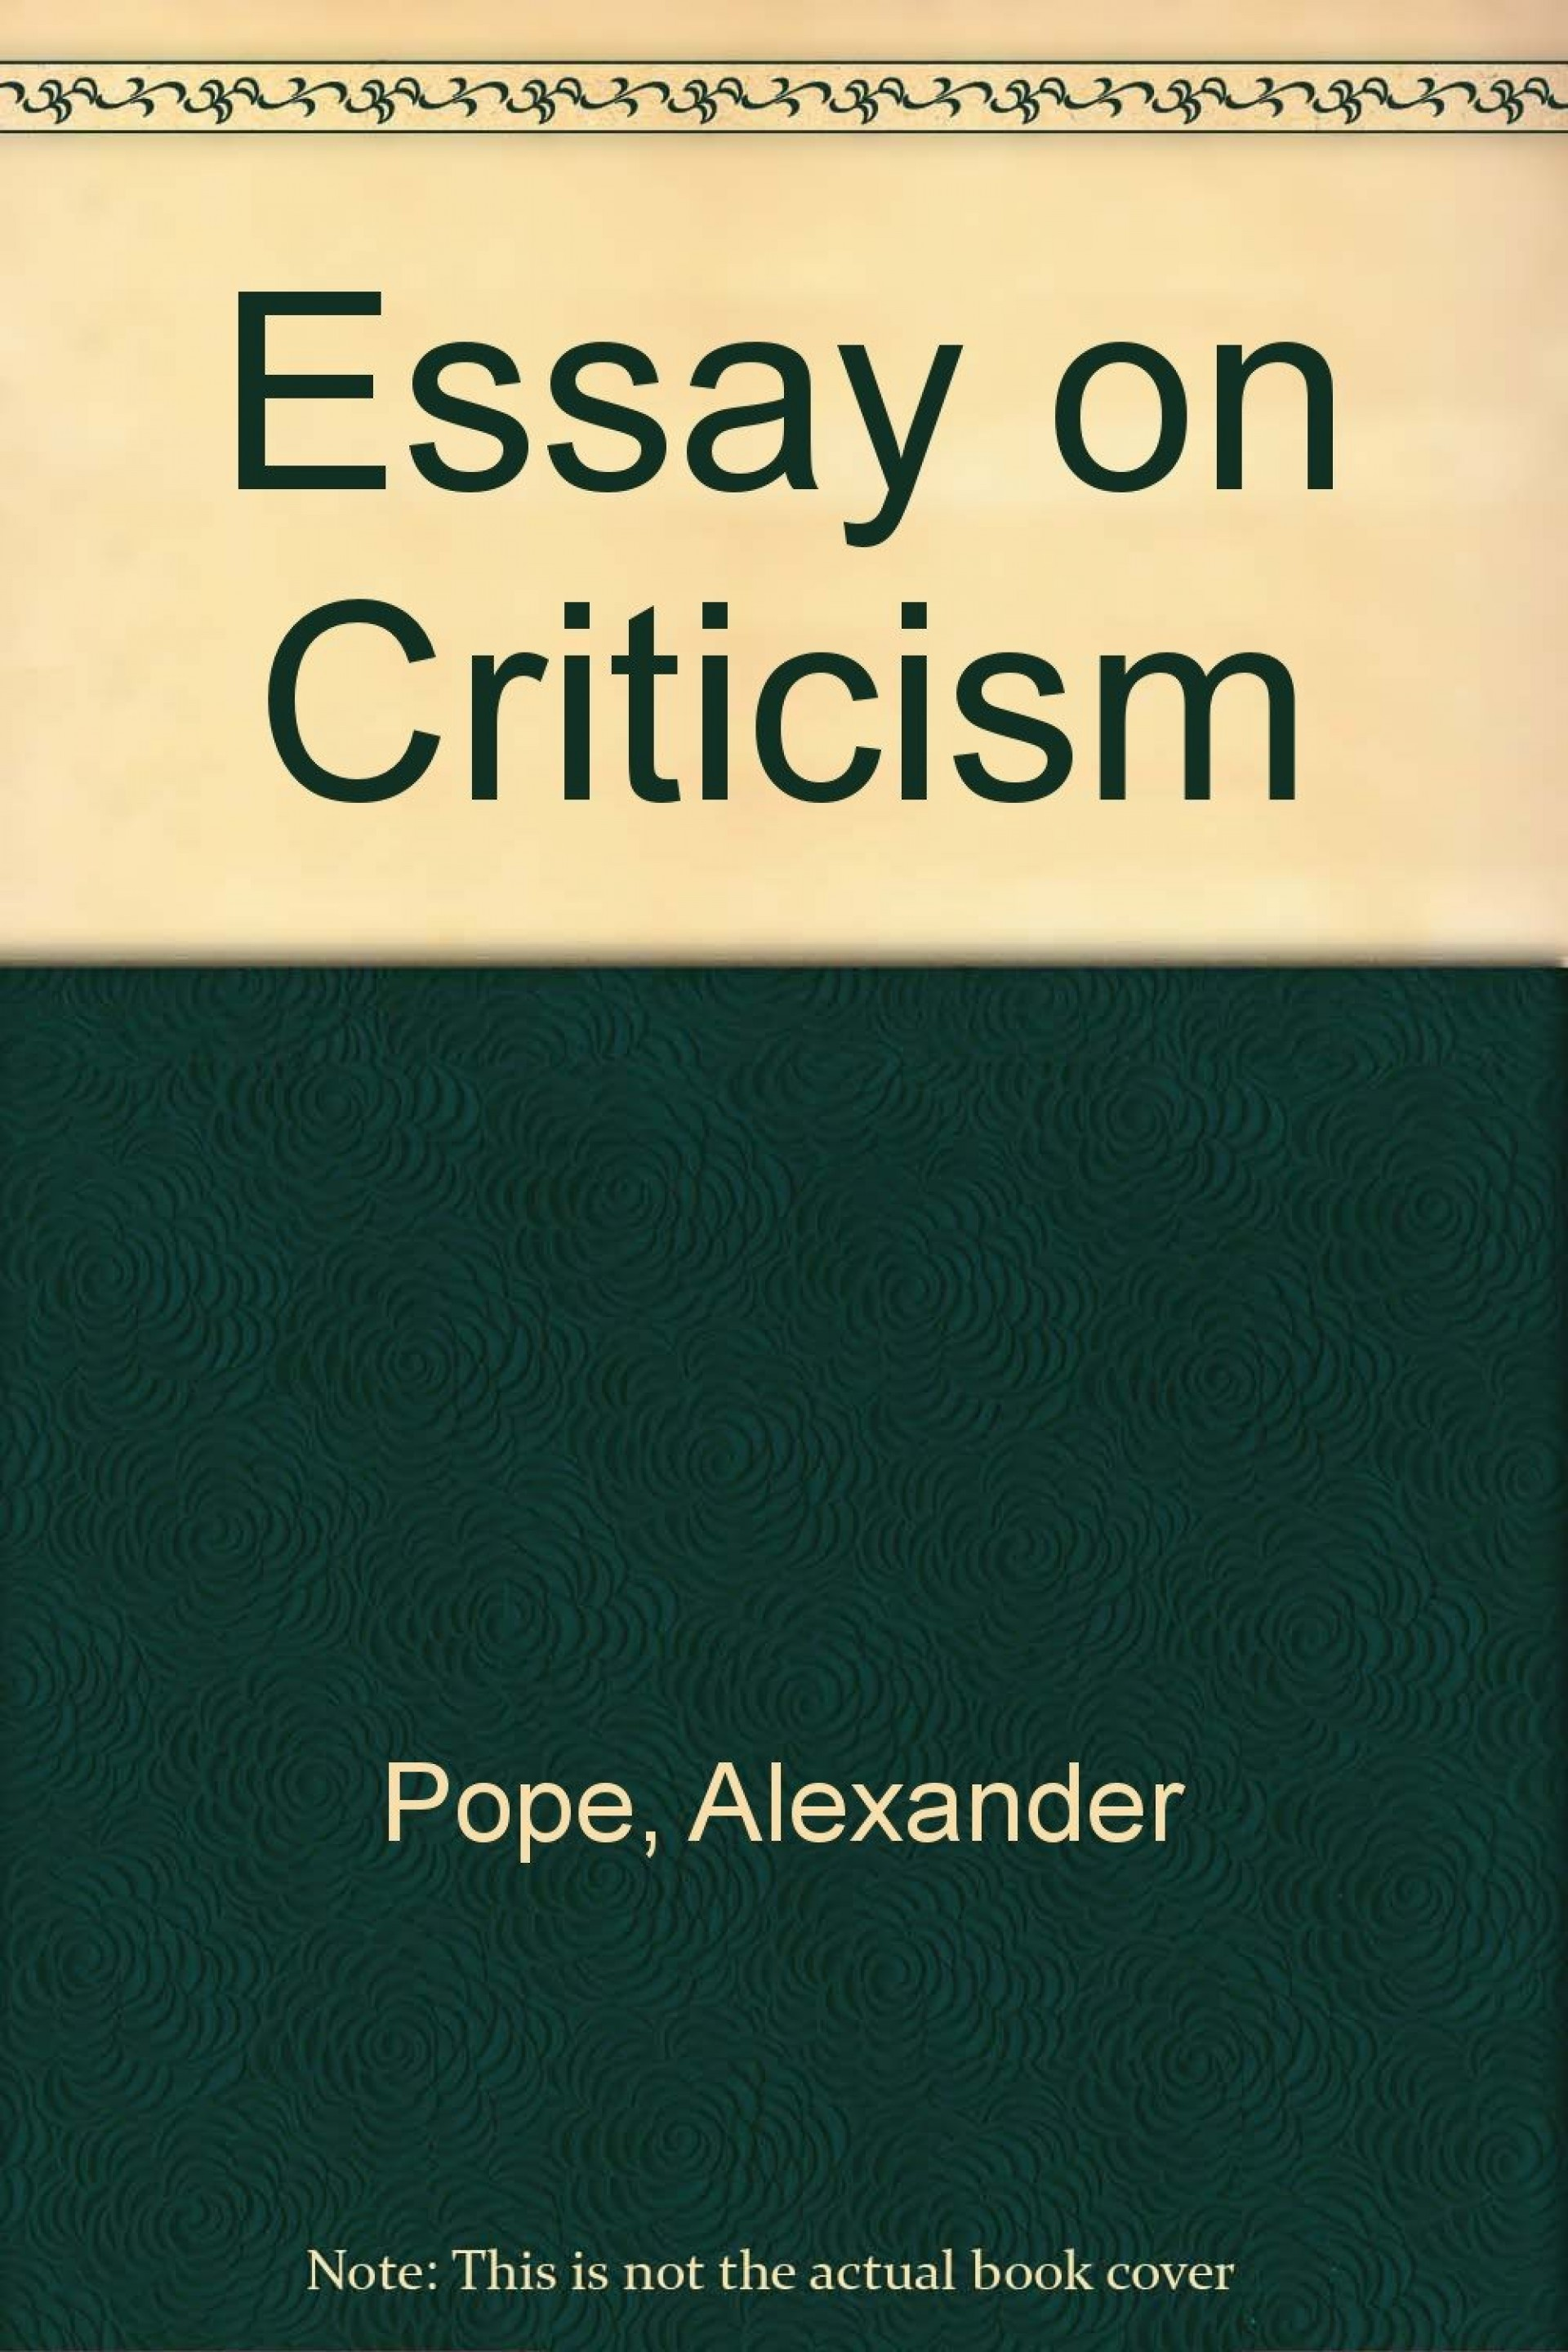 005 Alexander Pope Essay On Criticism Example Outstanding Part 1 Analysis Summary 1920